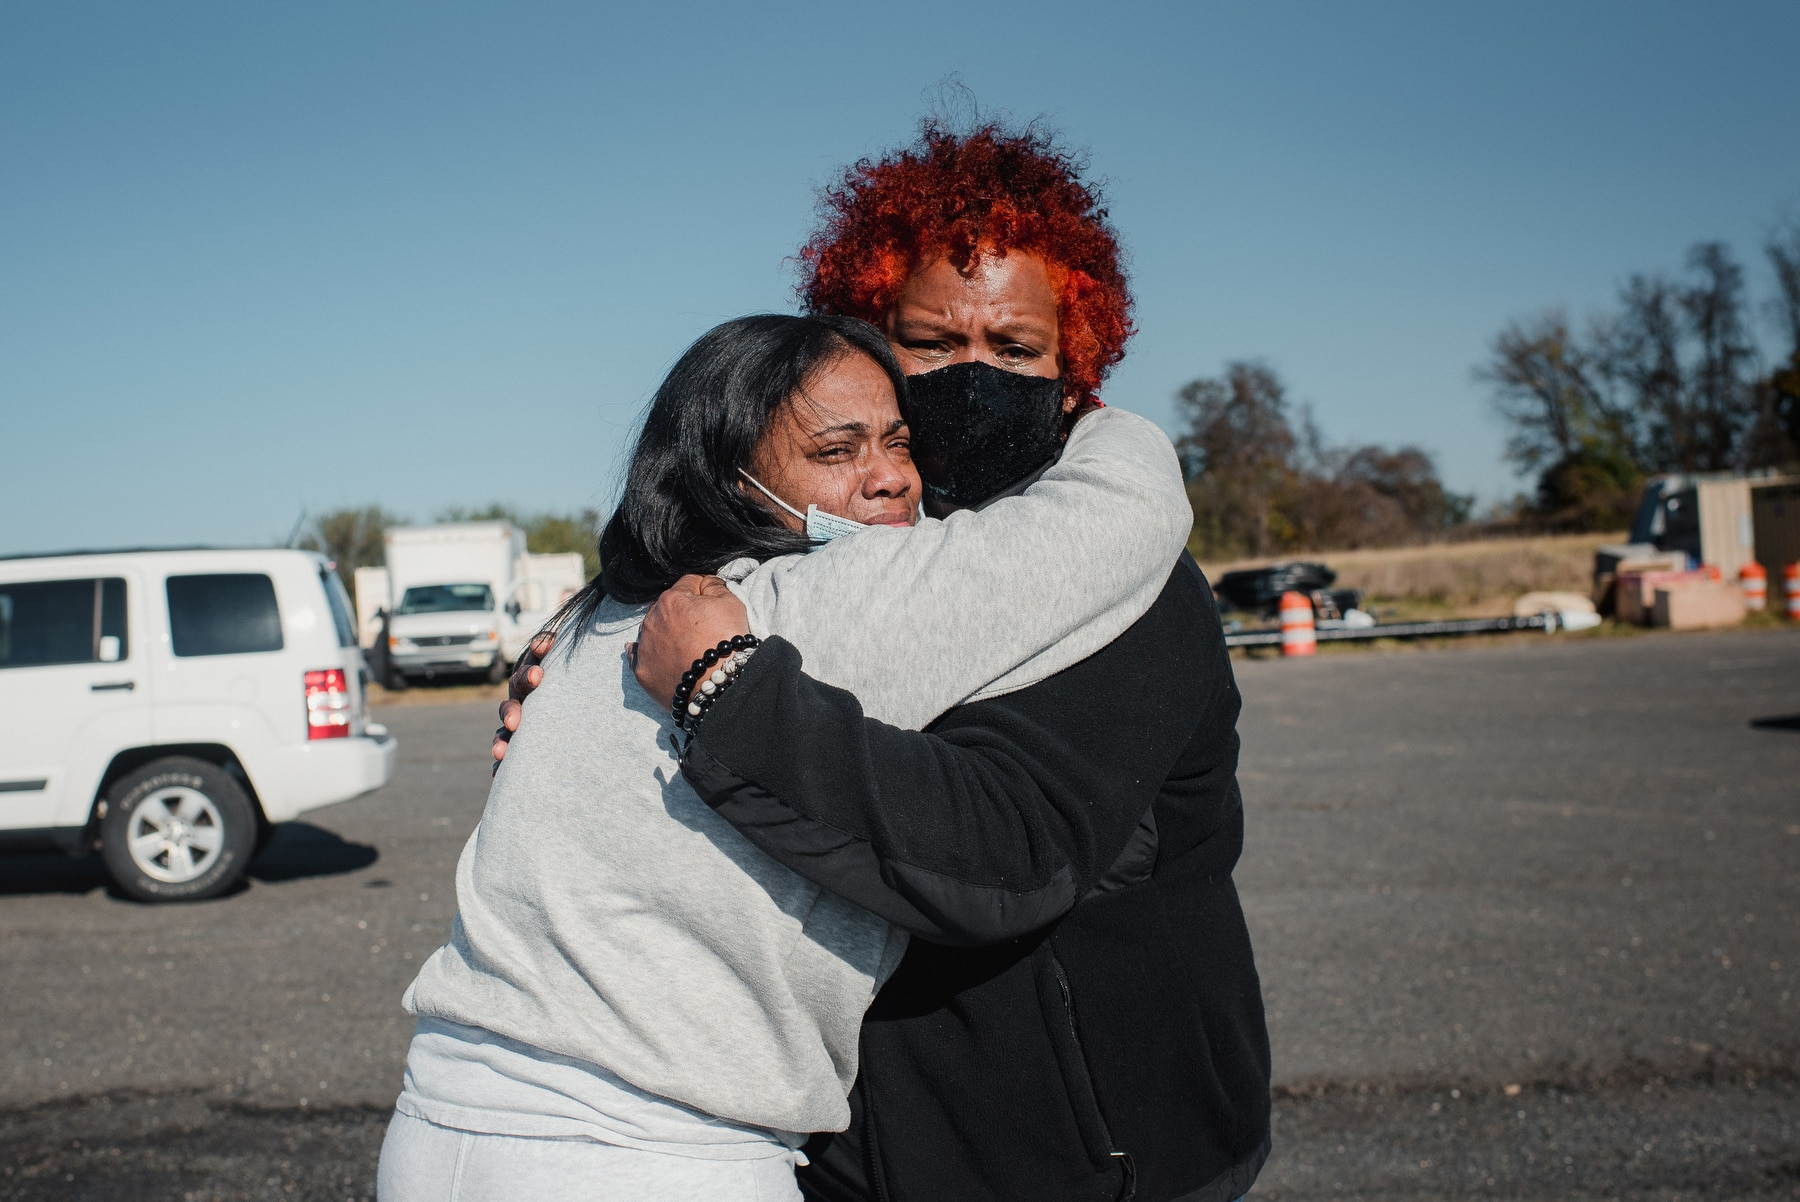 Hannah Yoon professional photographer photography social justice african american women embracing hugging crying sad upset new jersey inmate release red hair masks covid